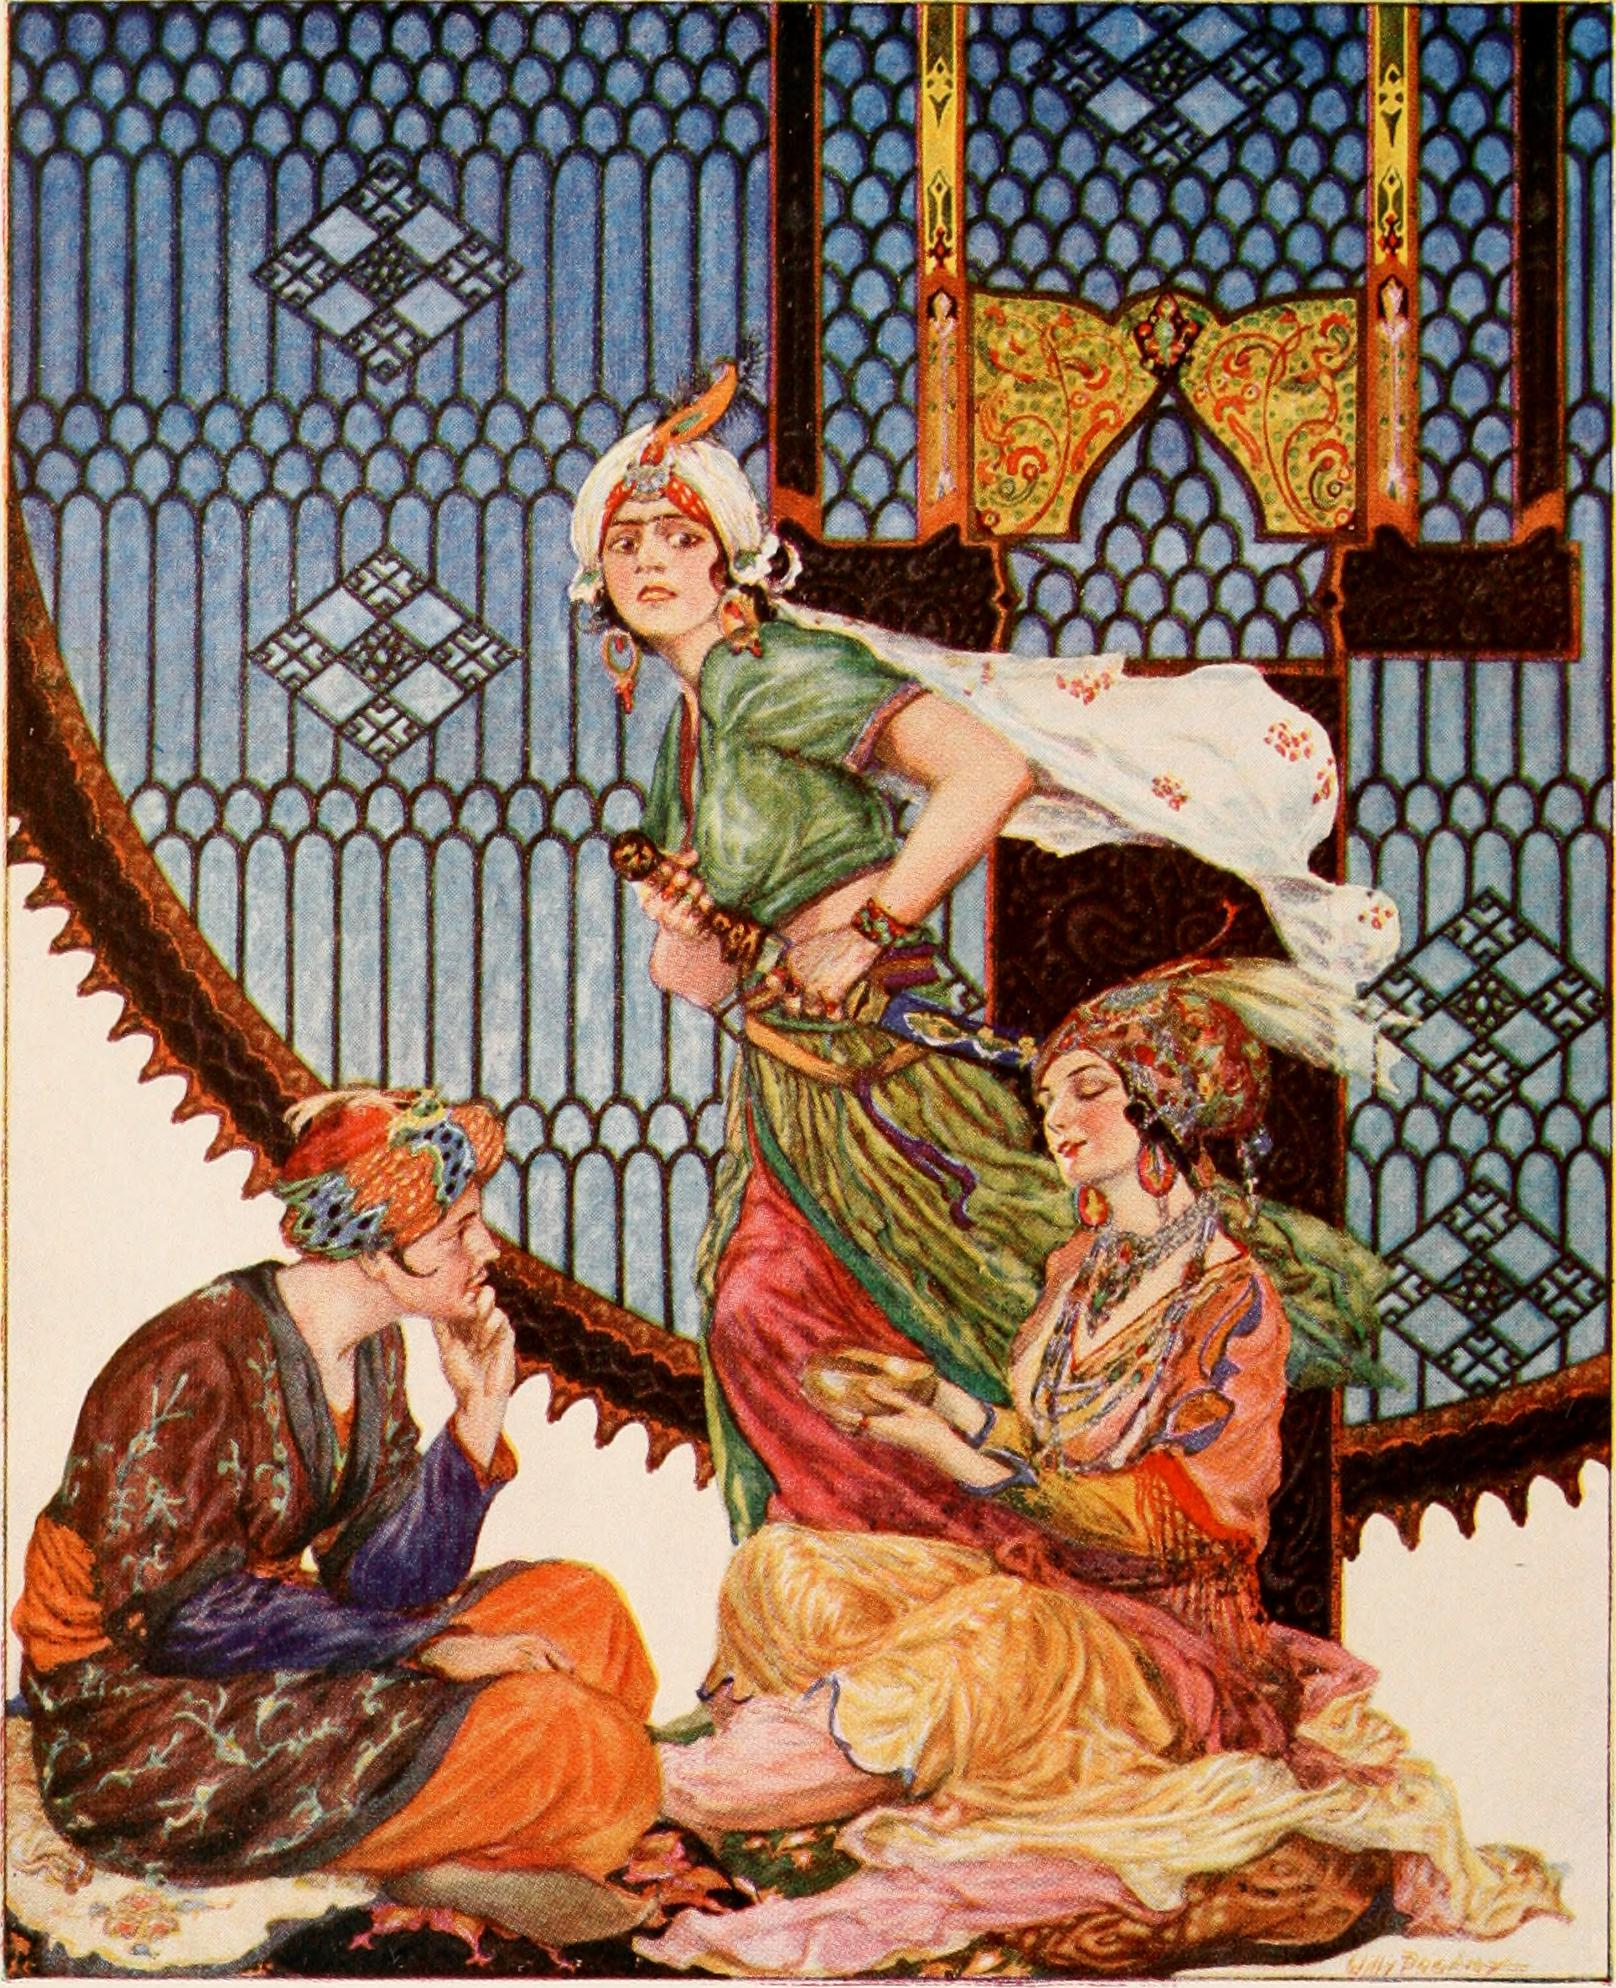 Illustration by Willy Pogany